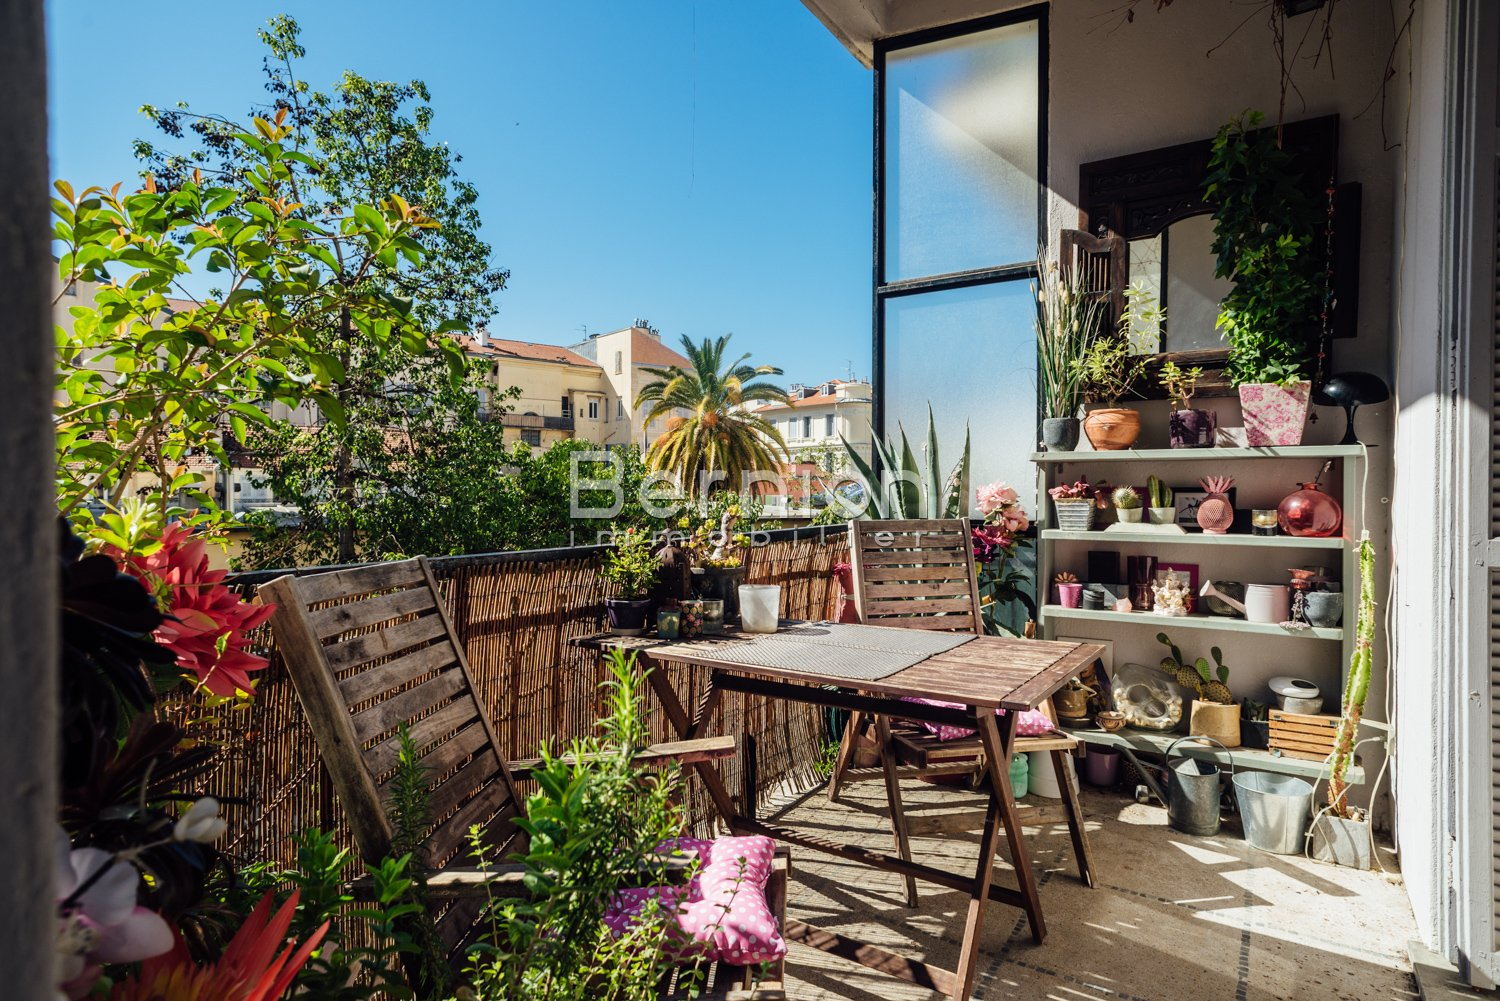 Deco Terrasse Appartement For Sale Nice City Center Beautiful 72 Sqm Apartment With Terrace